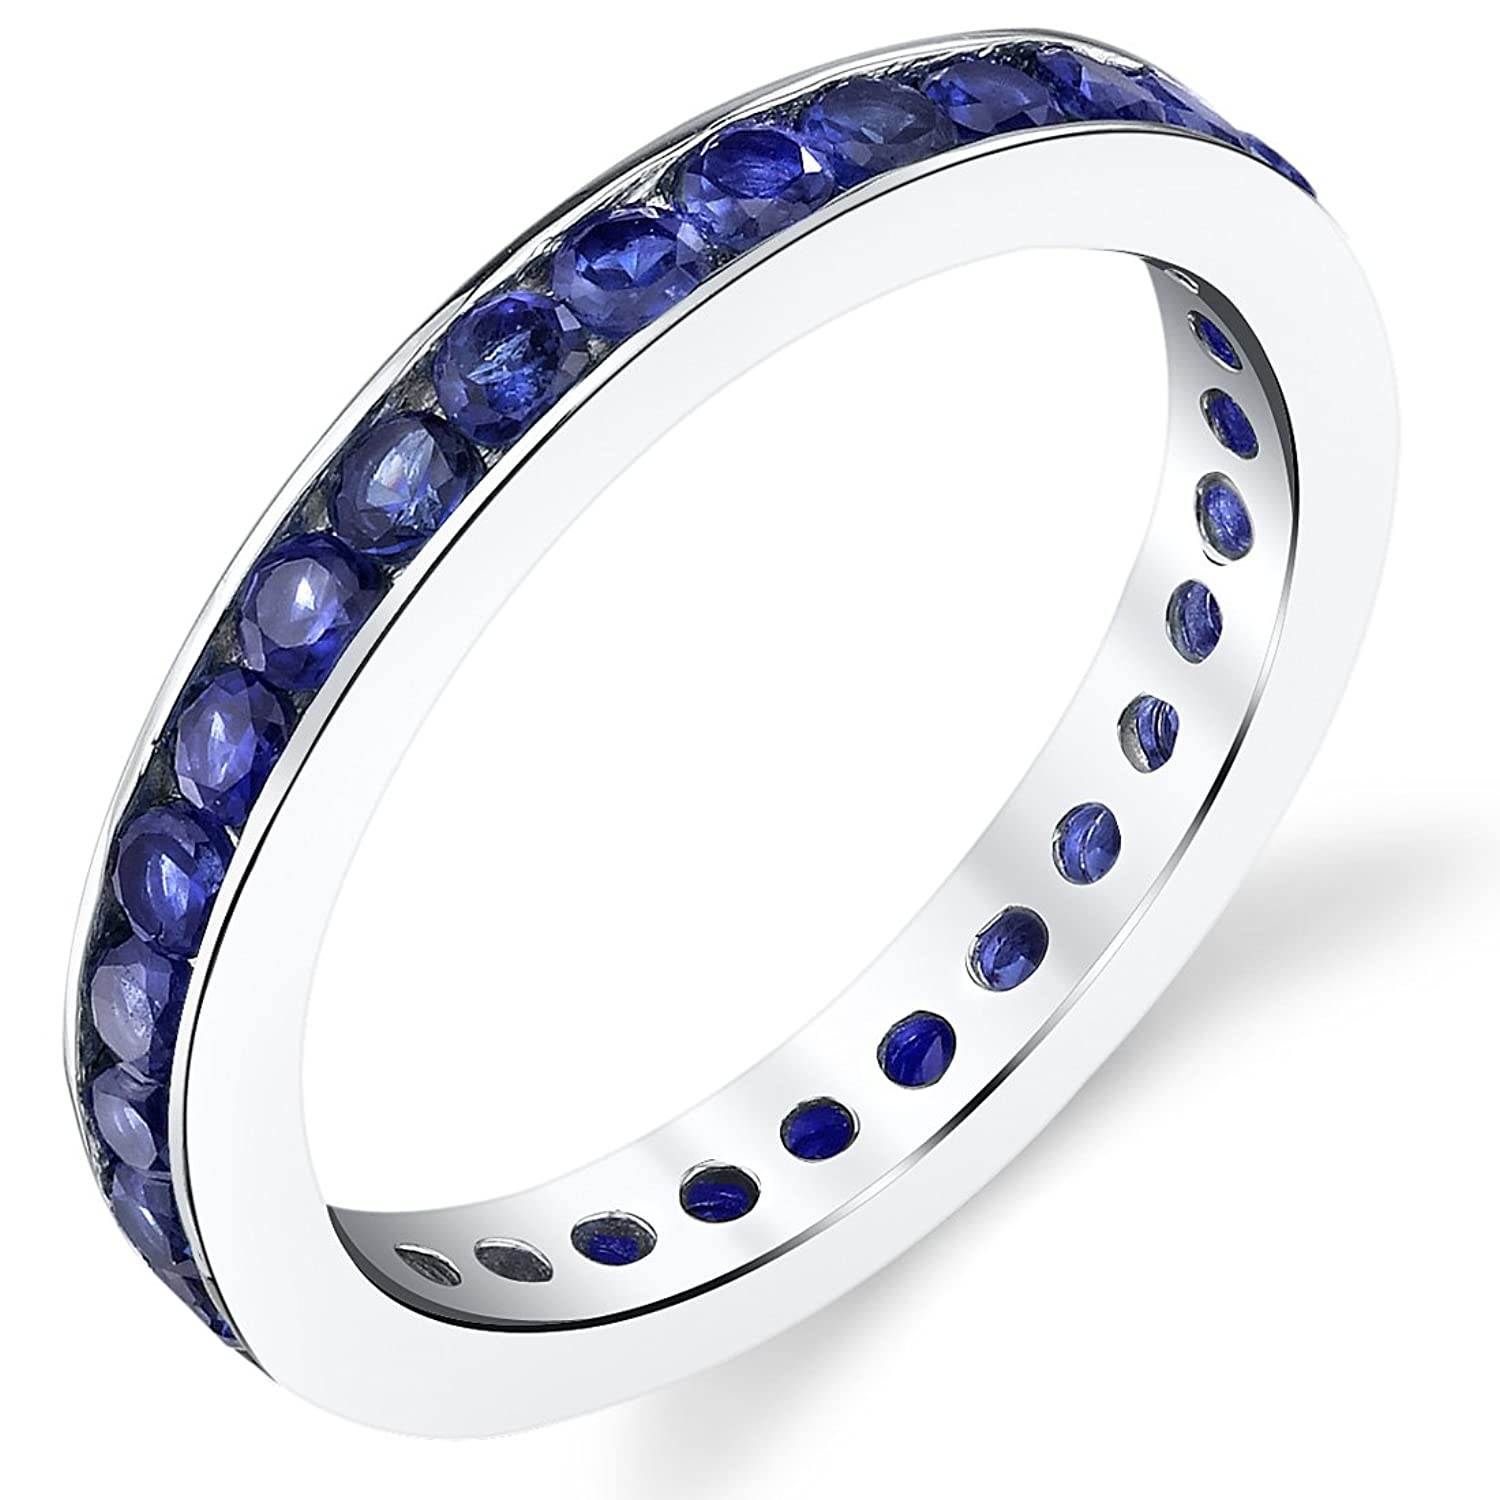 beckers sapphire band eternity bands jewelers yellow size